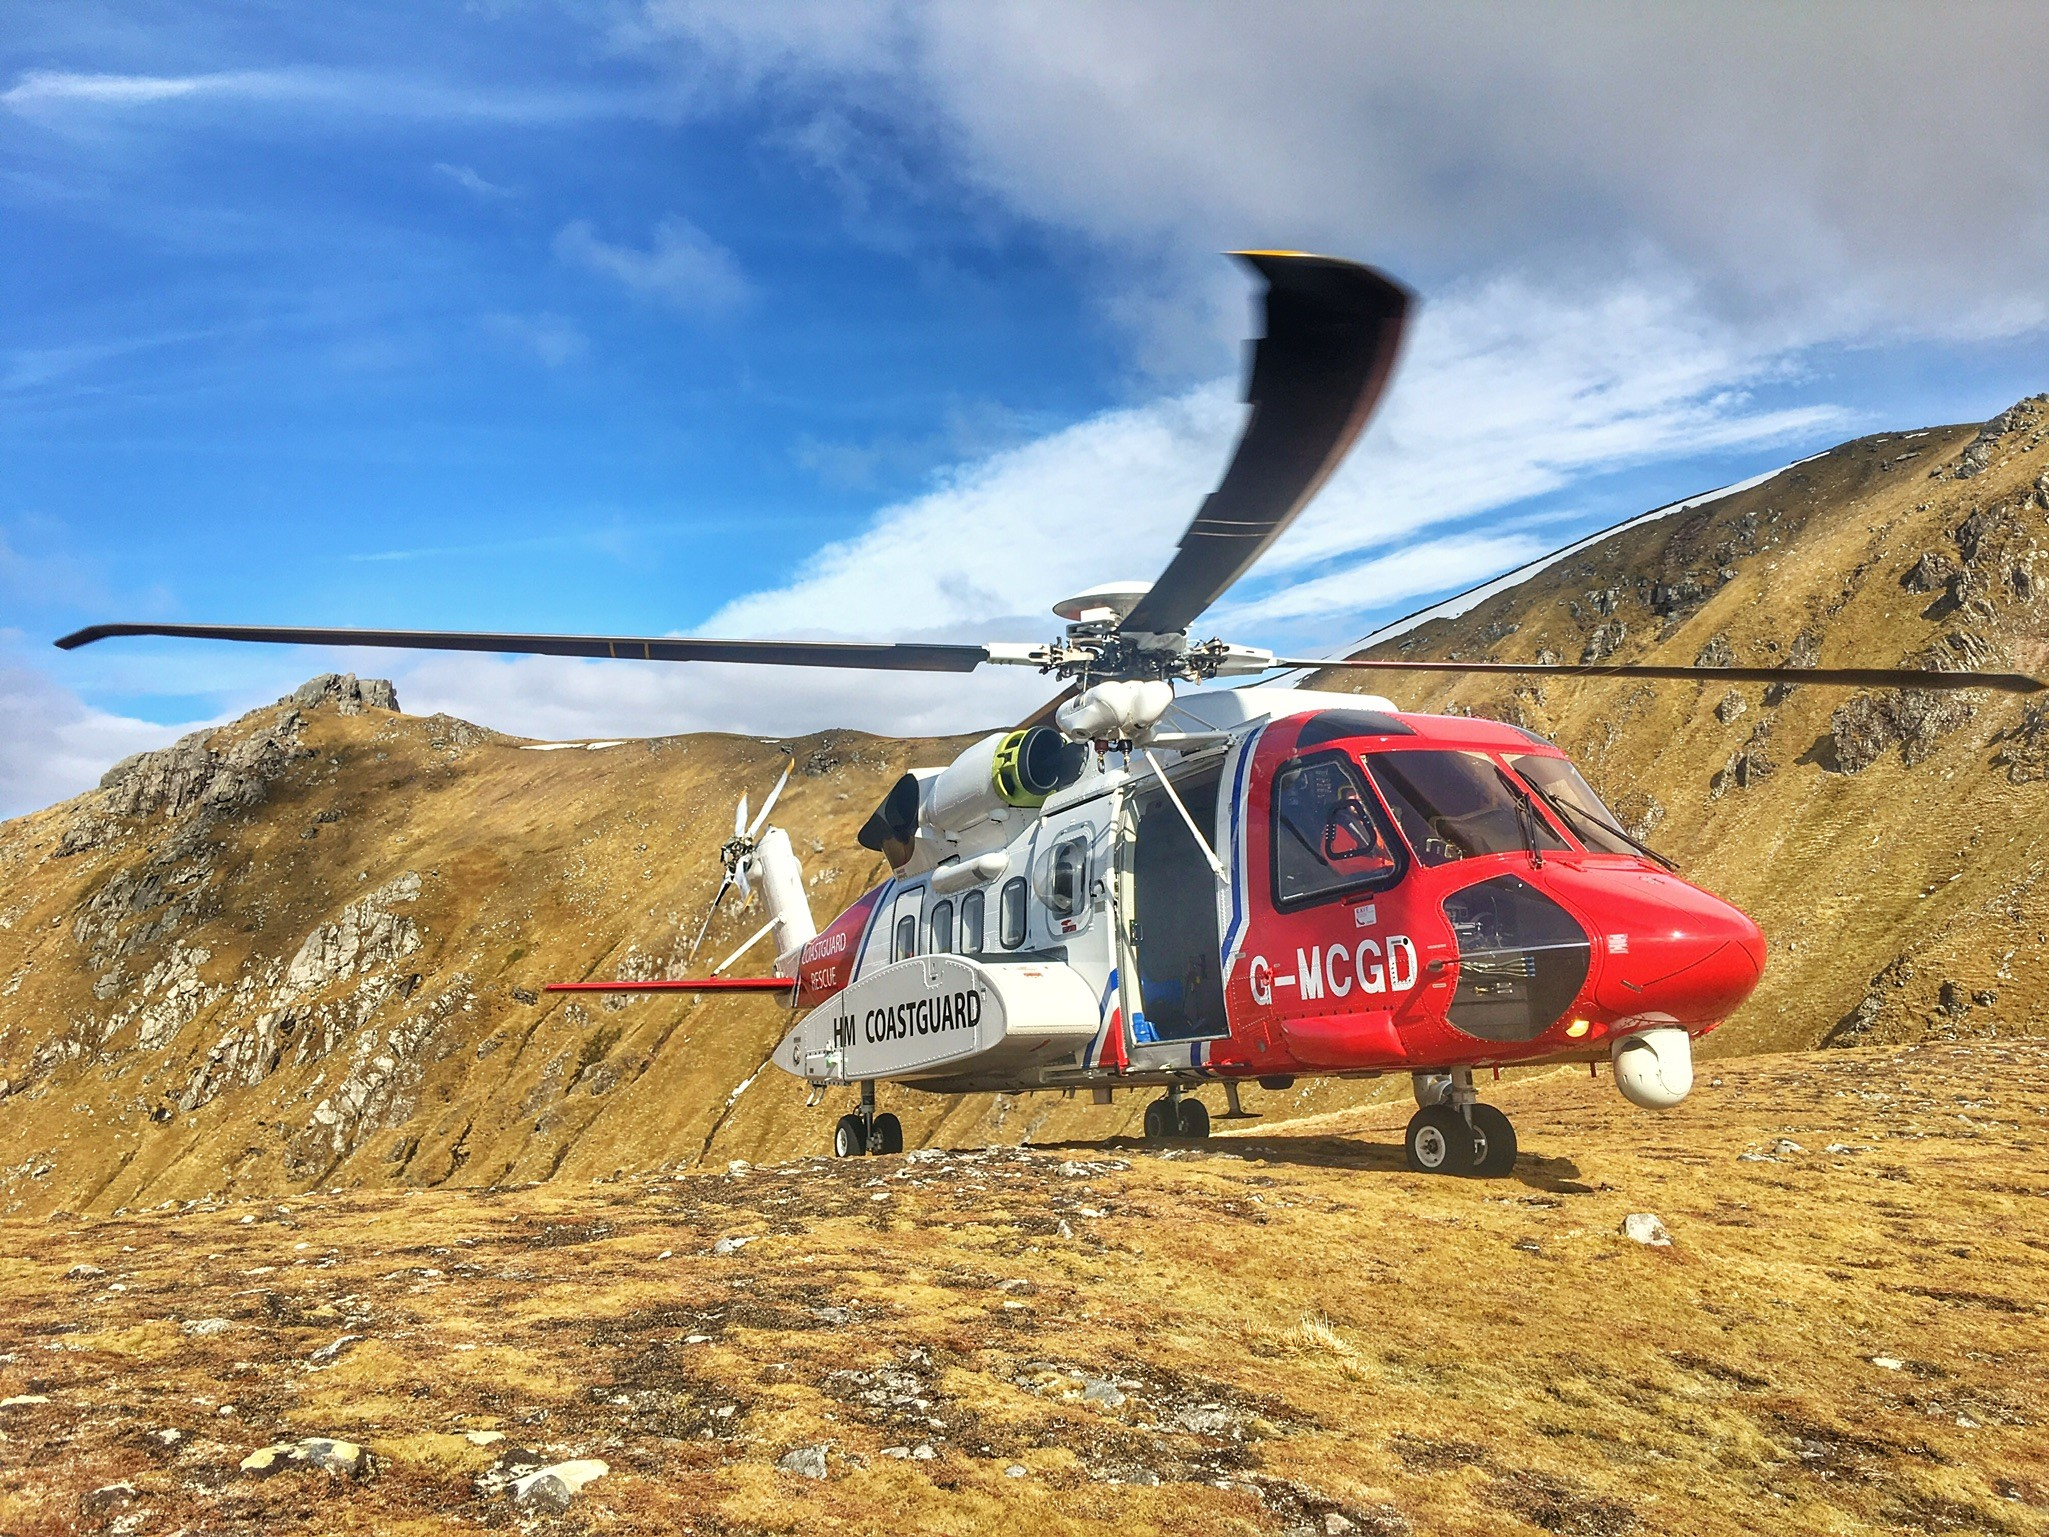 Stornoway Search and Rescue helicopter team complete 1,000th tasking